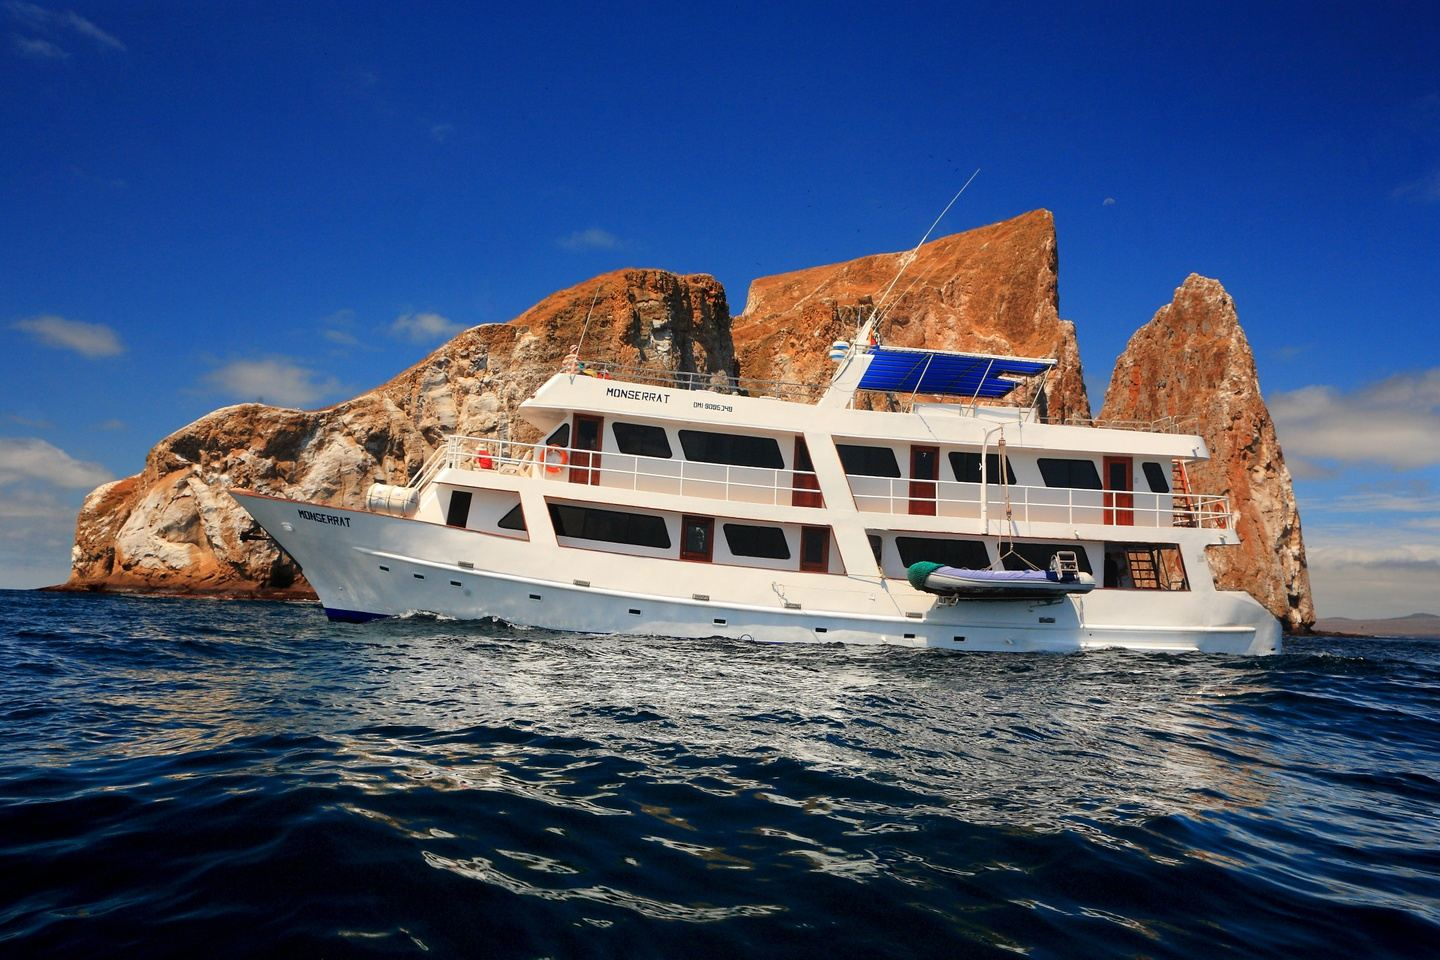 MONSERRAT: CRUISE + AIRLINE TICKET